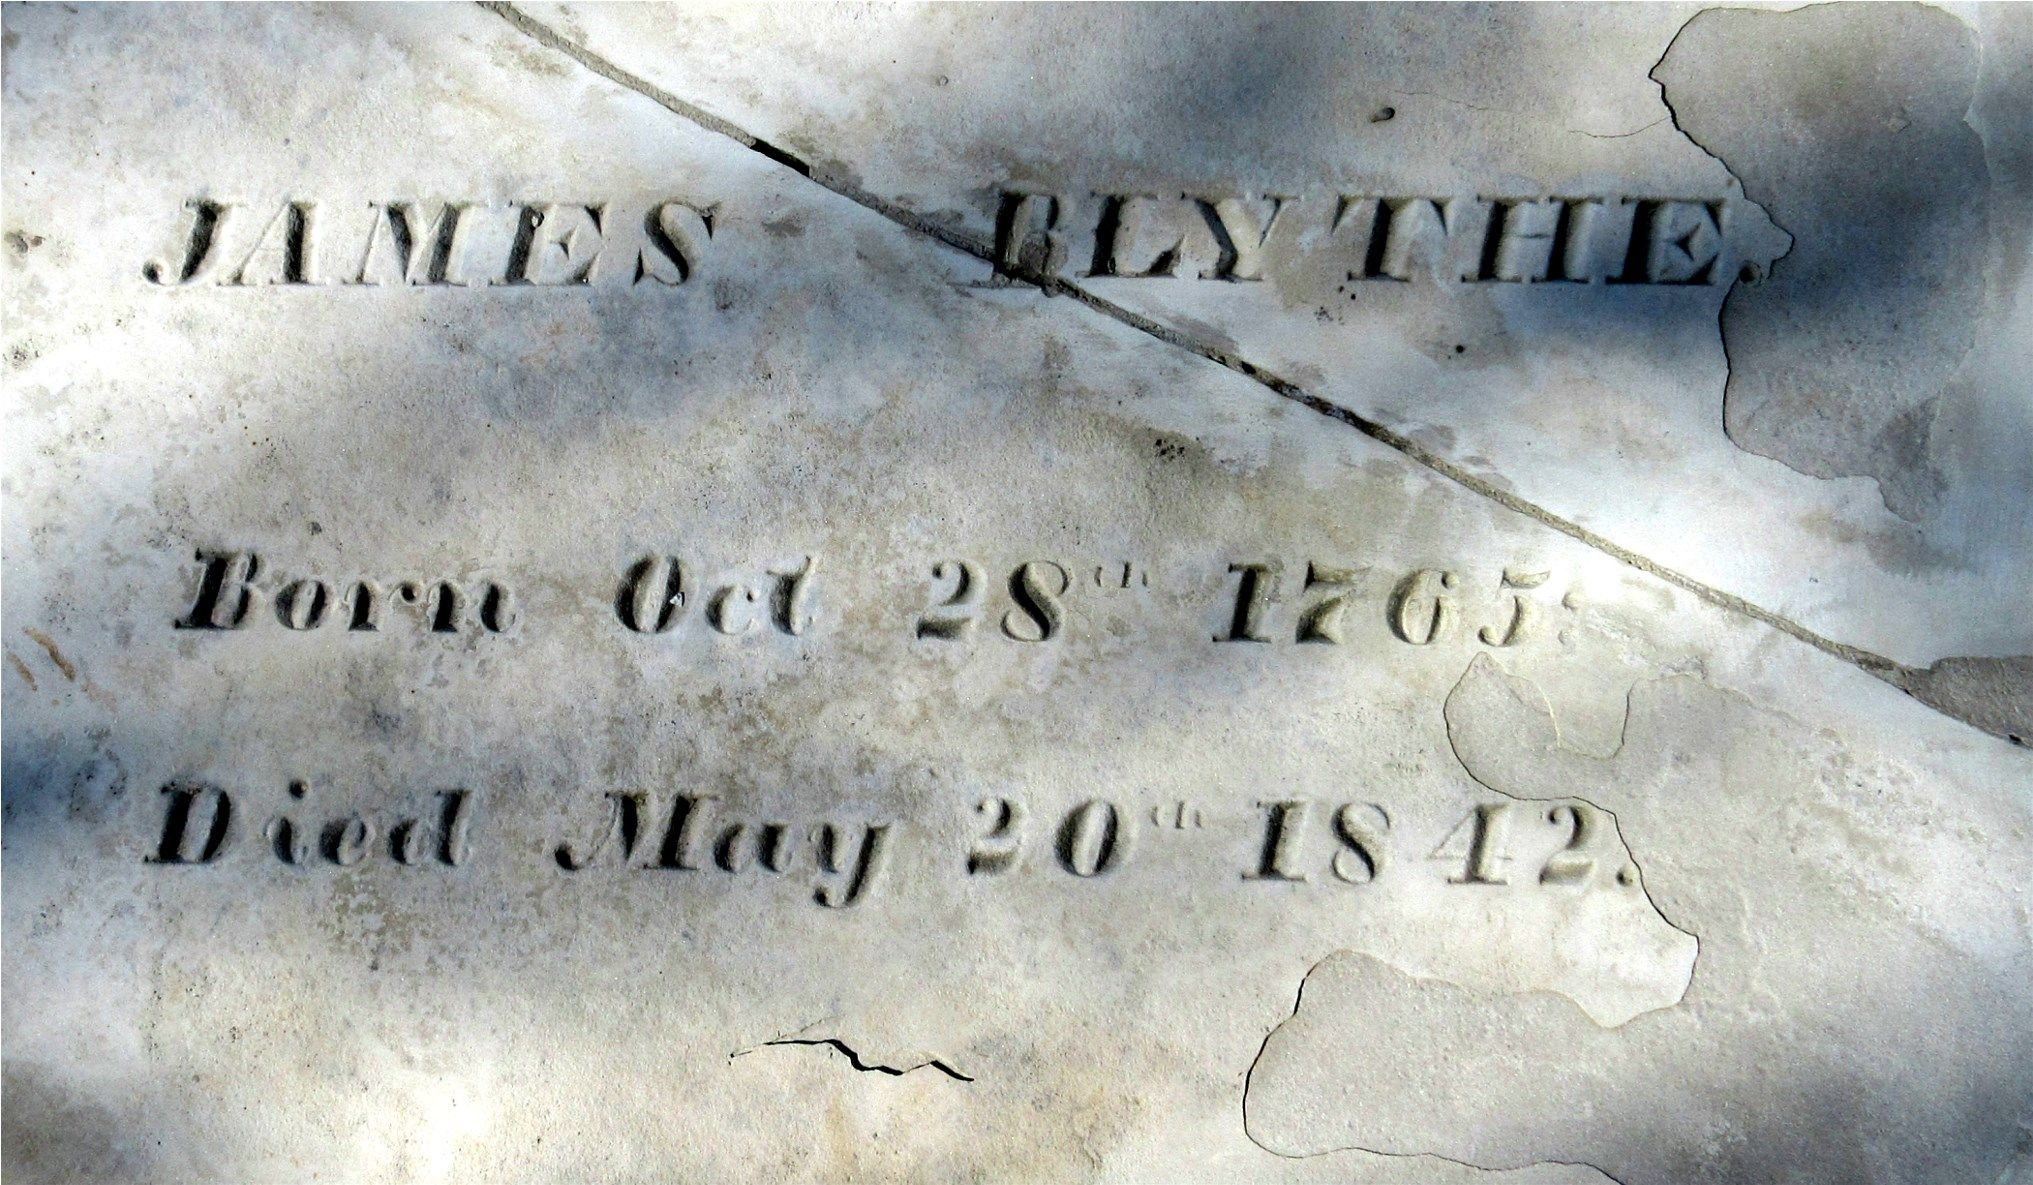 James Blythe is buried at Hanover Cemetery, Hanover, Indiana.